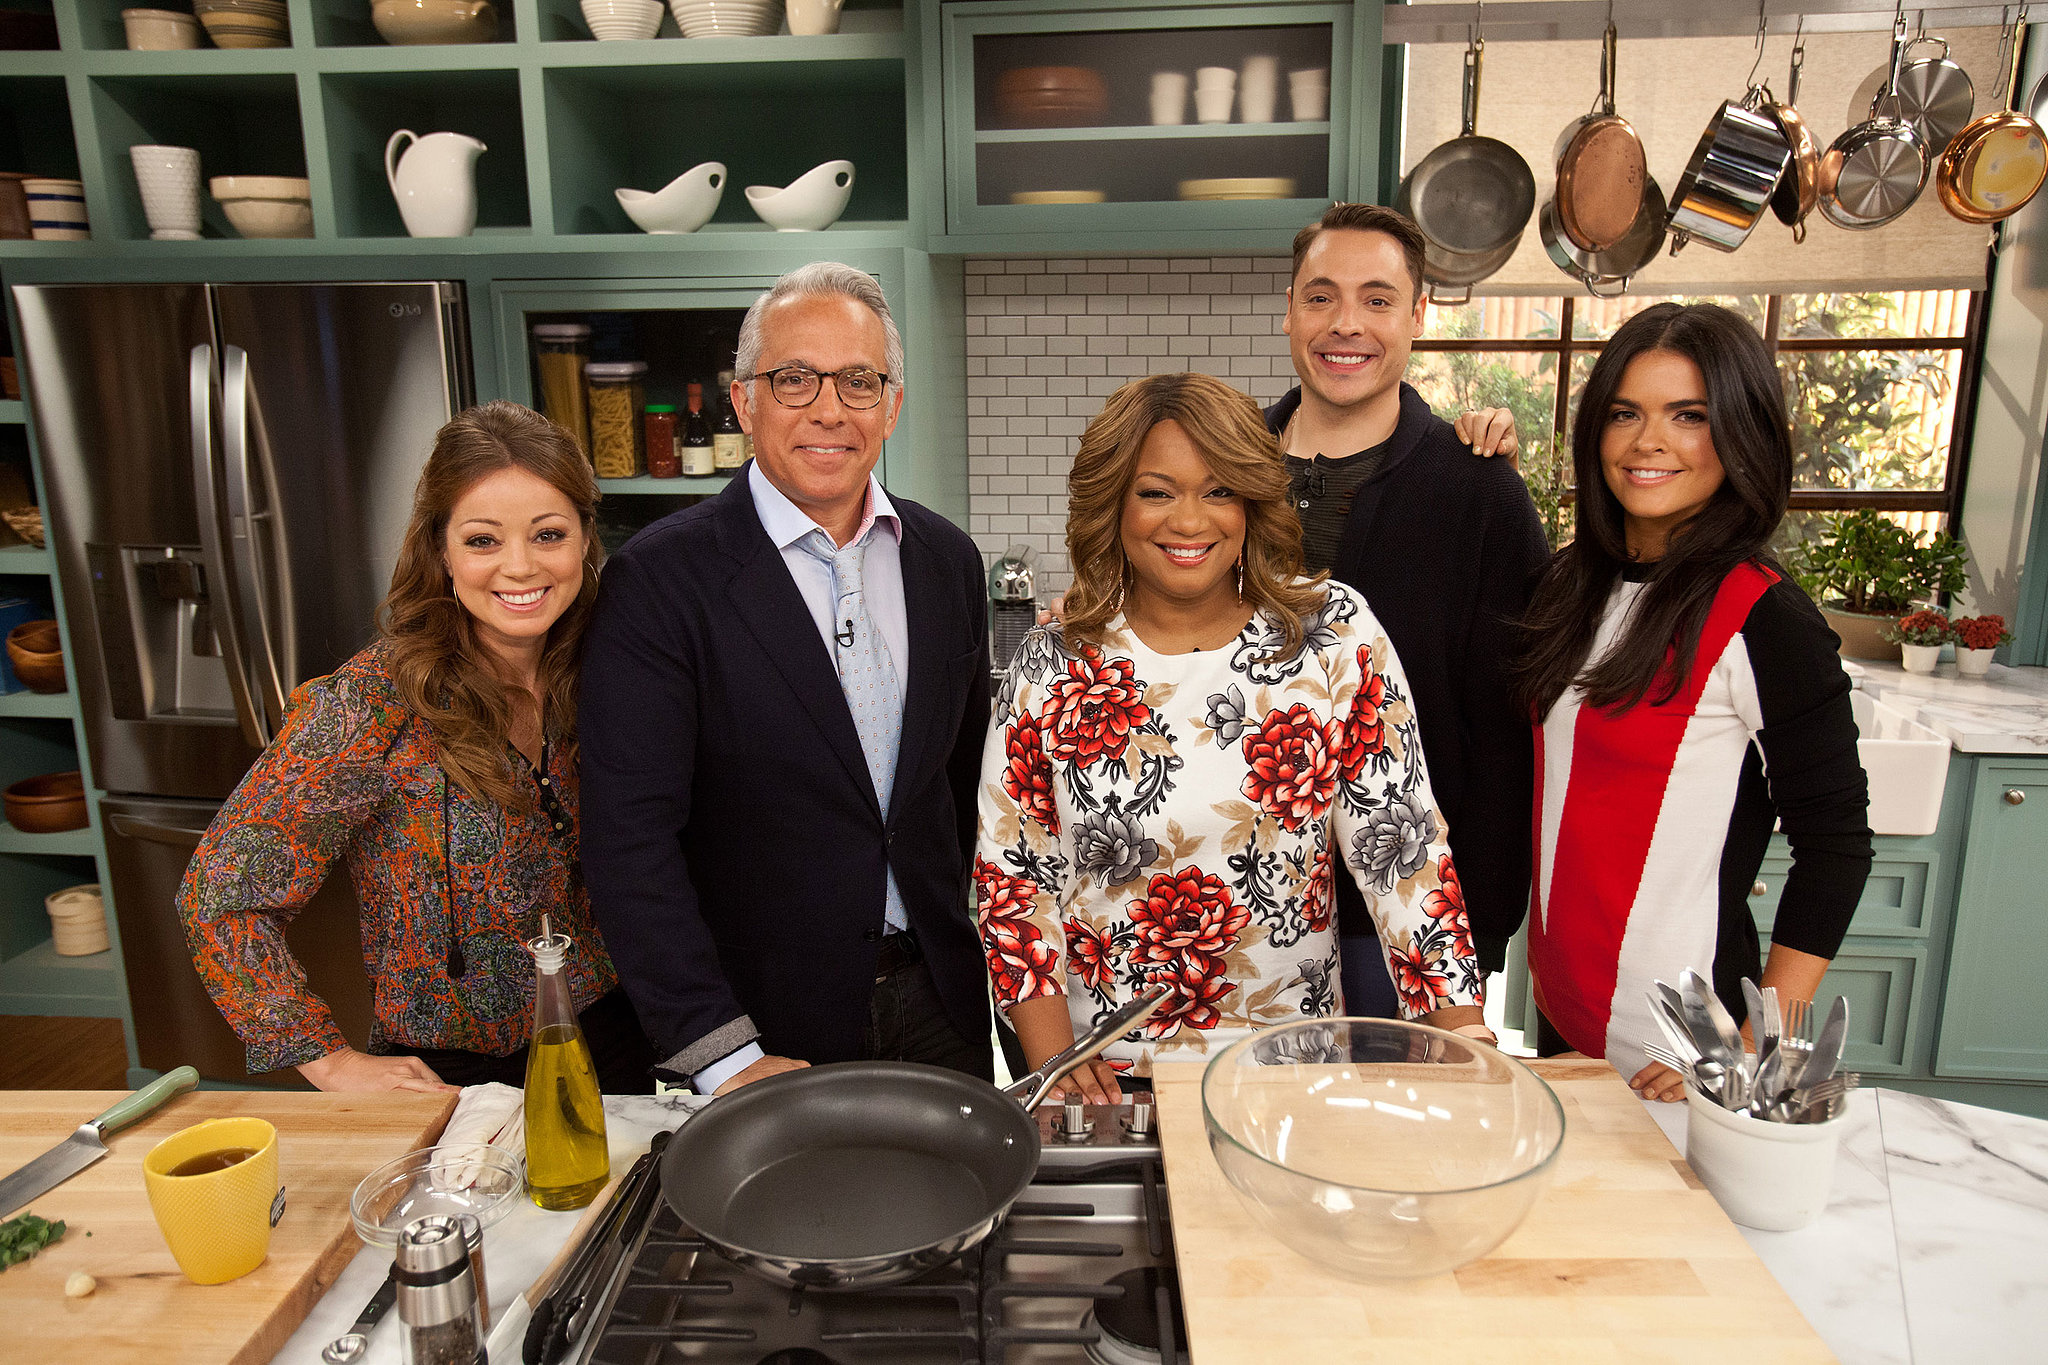 Food Networks The Kitchen  8 CantMiss Food Picks This Month  POPSUGAR Food